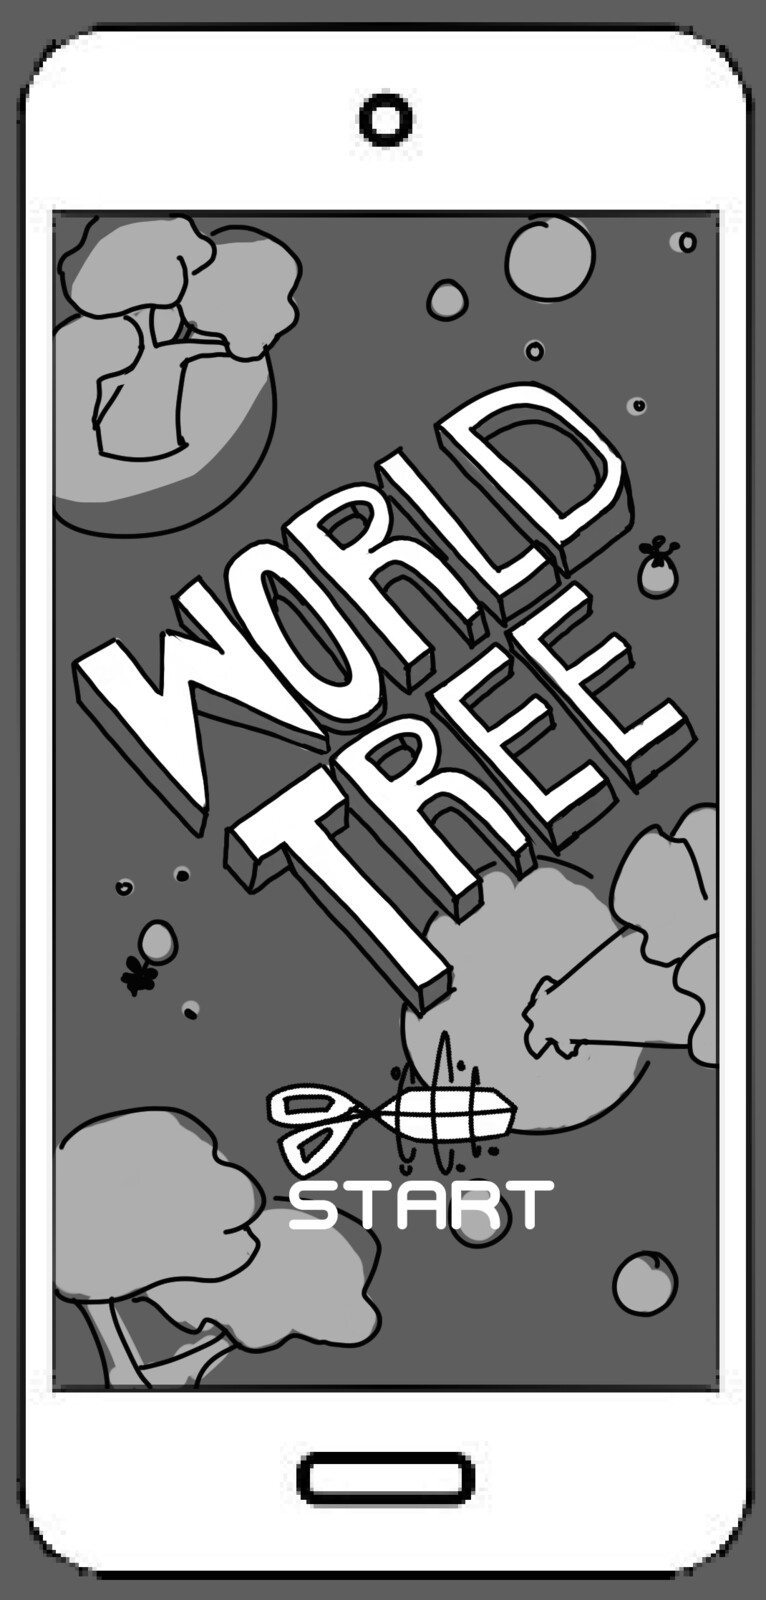 Start screen for World Tree, a tree pruning game where the Tree is as big as a planet